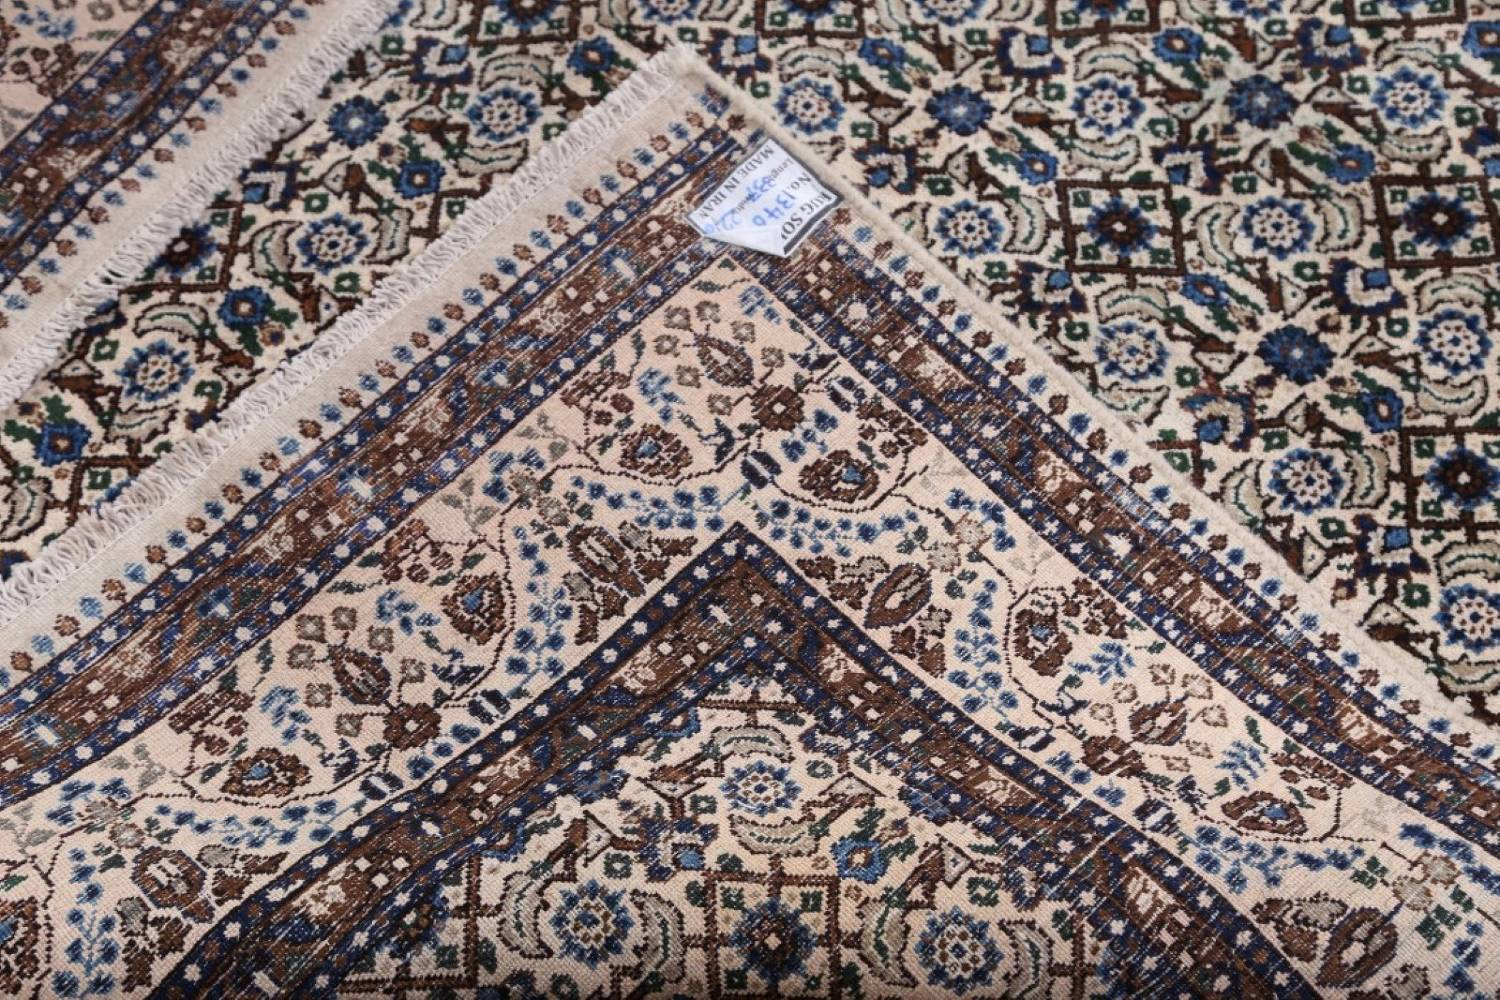 All-Over Floral 7x11 Mood Persian Wool Area Rug image 18